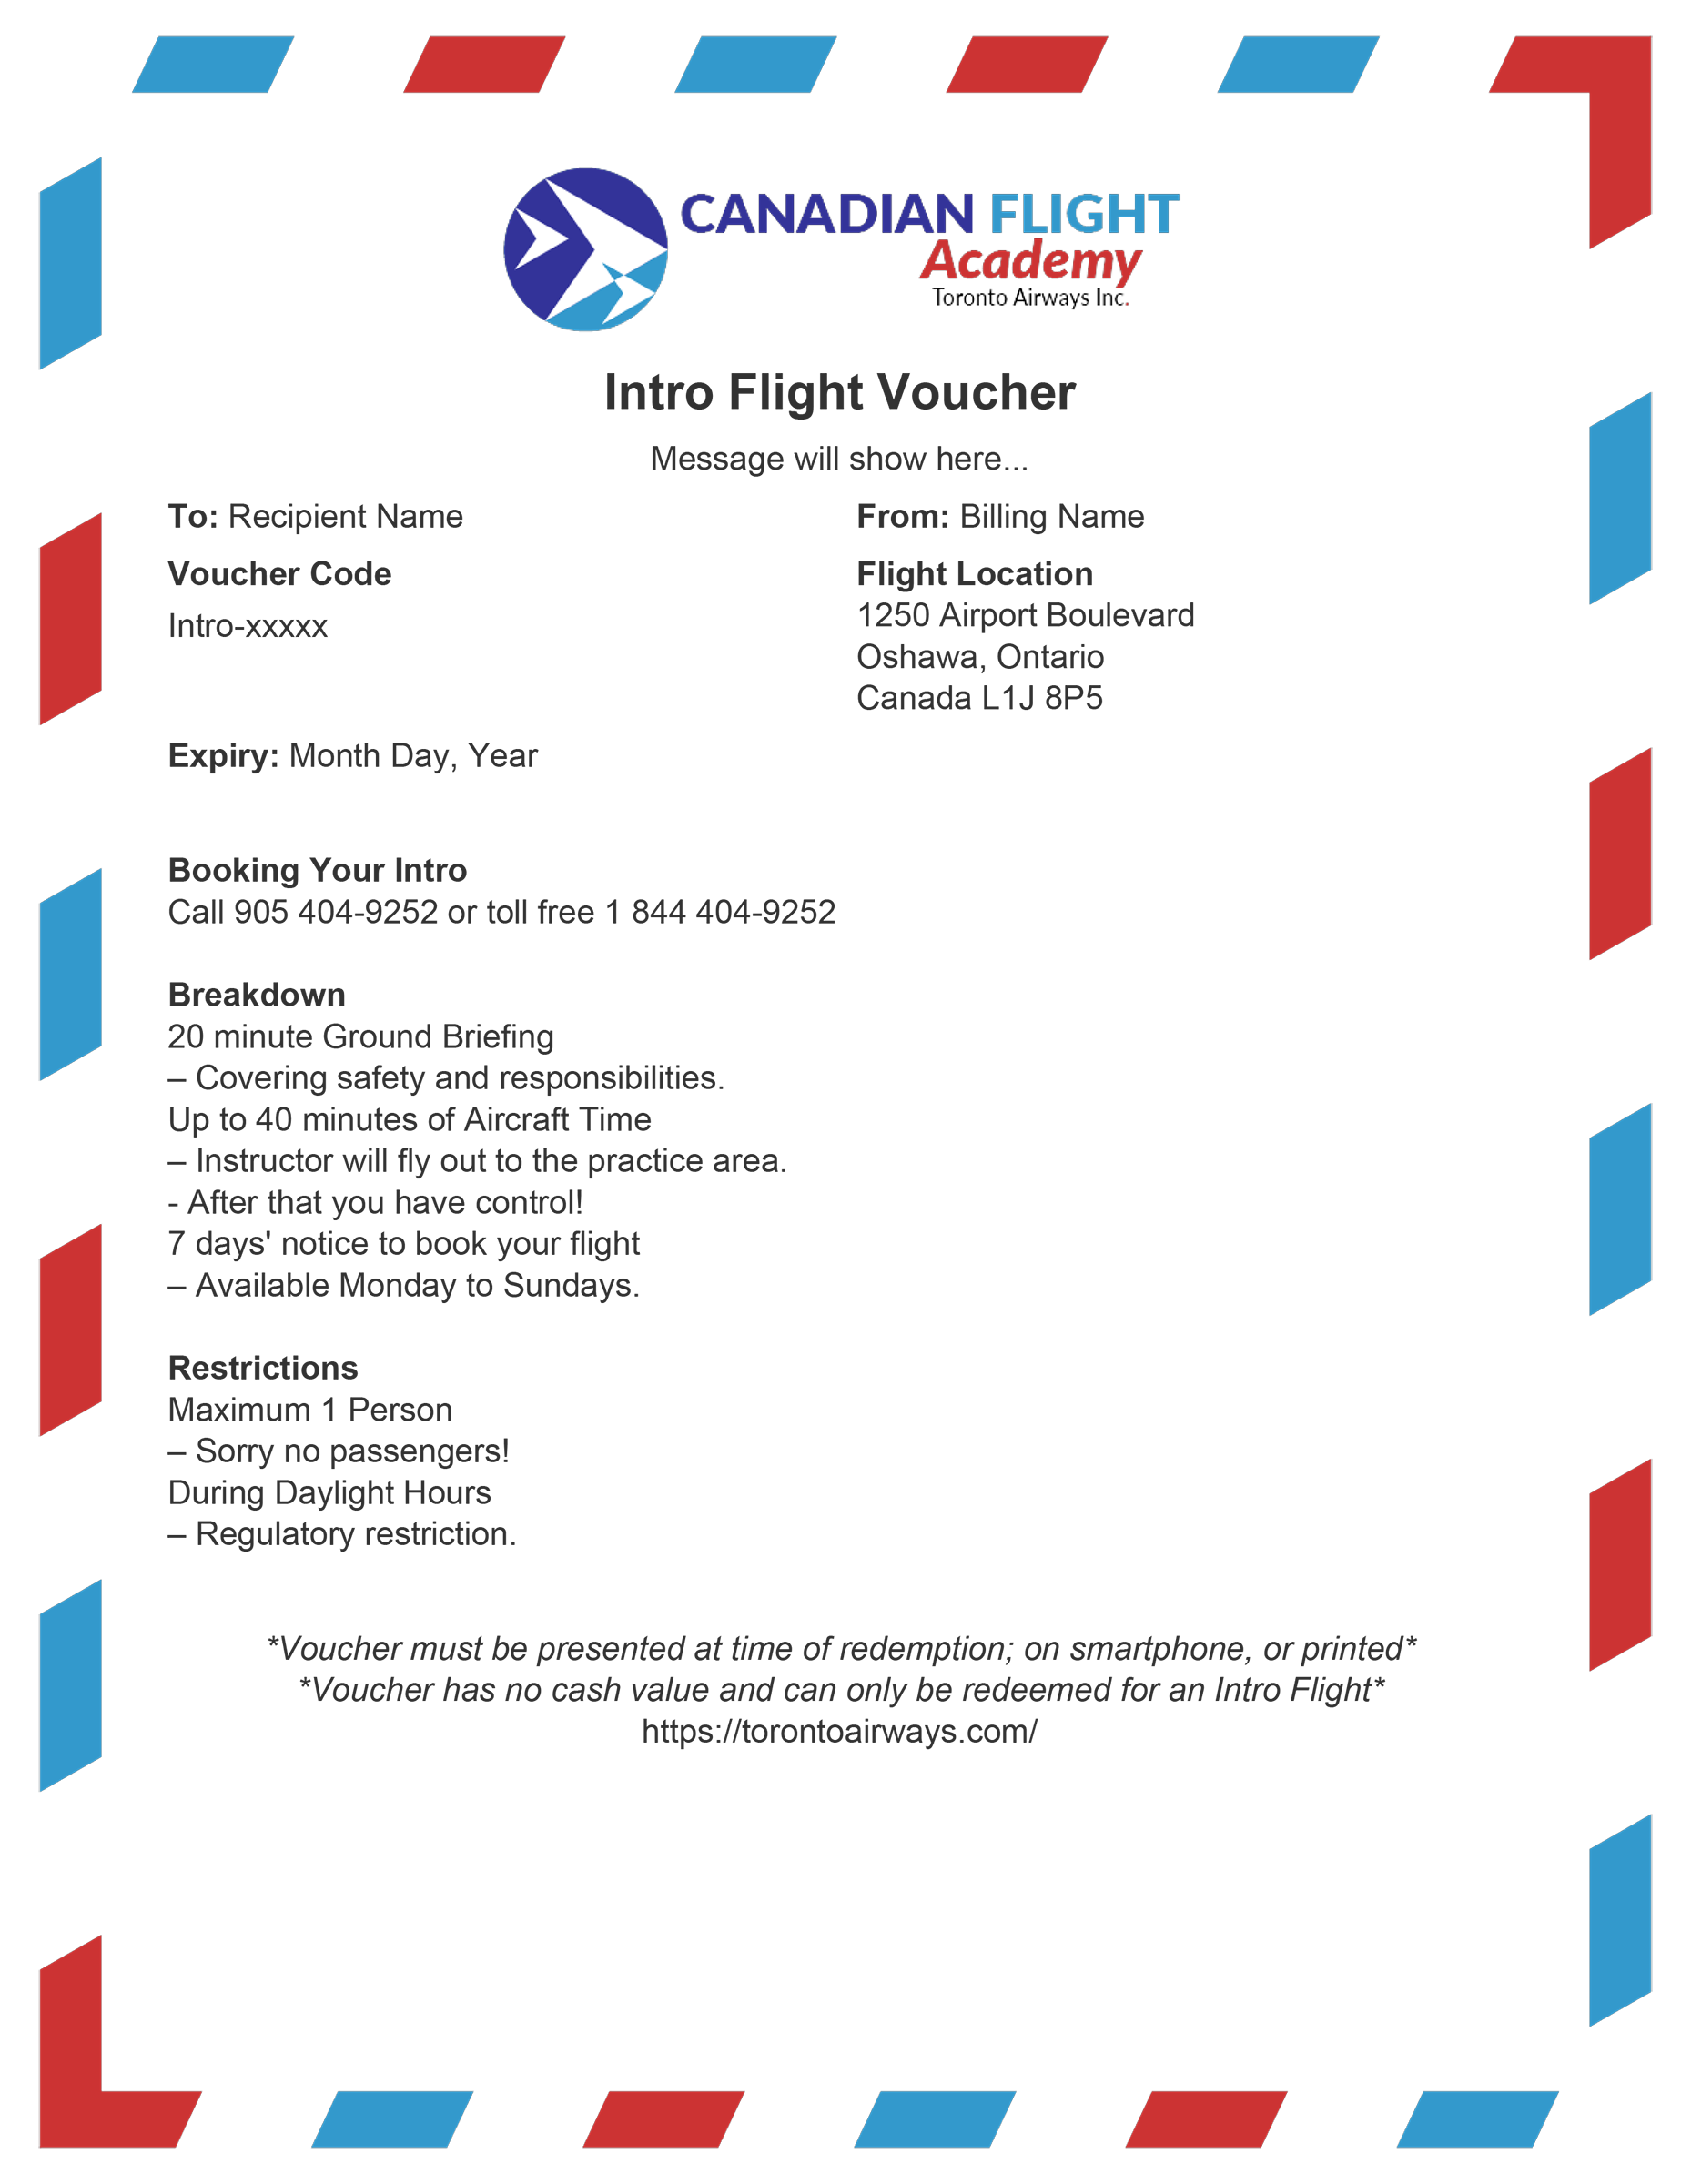 Example Canadian Flight Academy Voucher